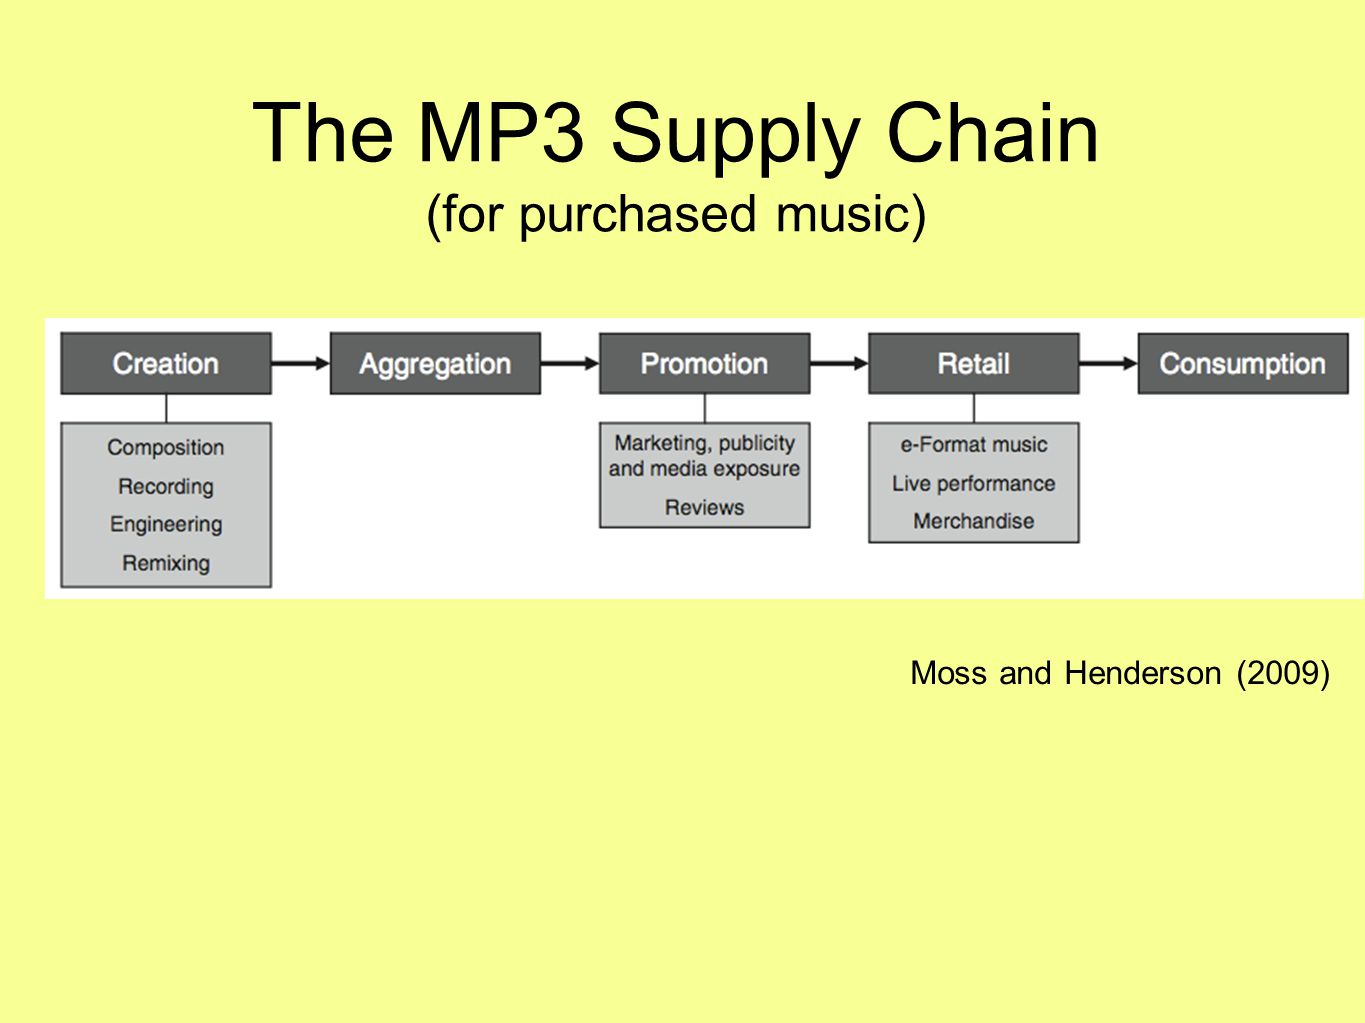 The MP3 Supply Chain (for purchased music) Moss and Henderson (2009)